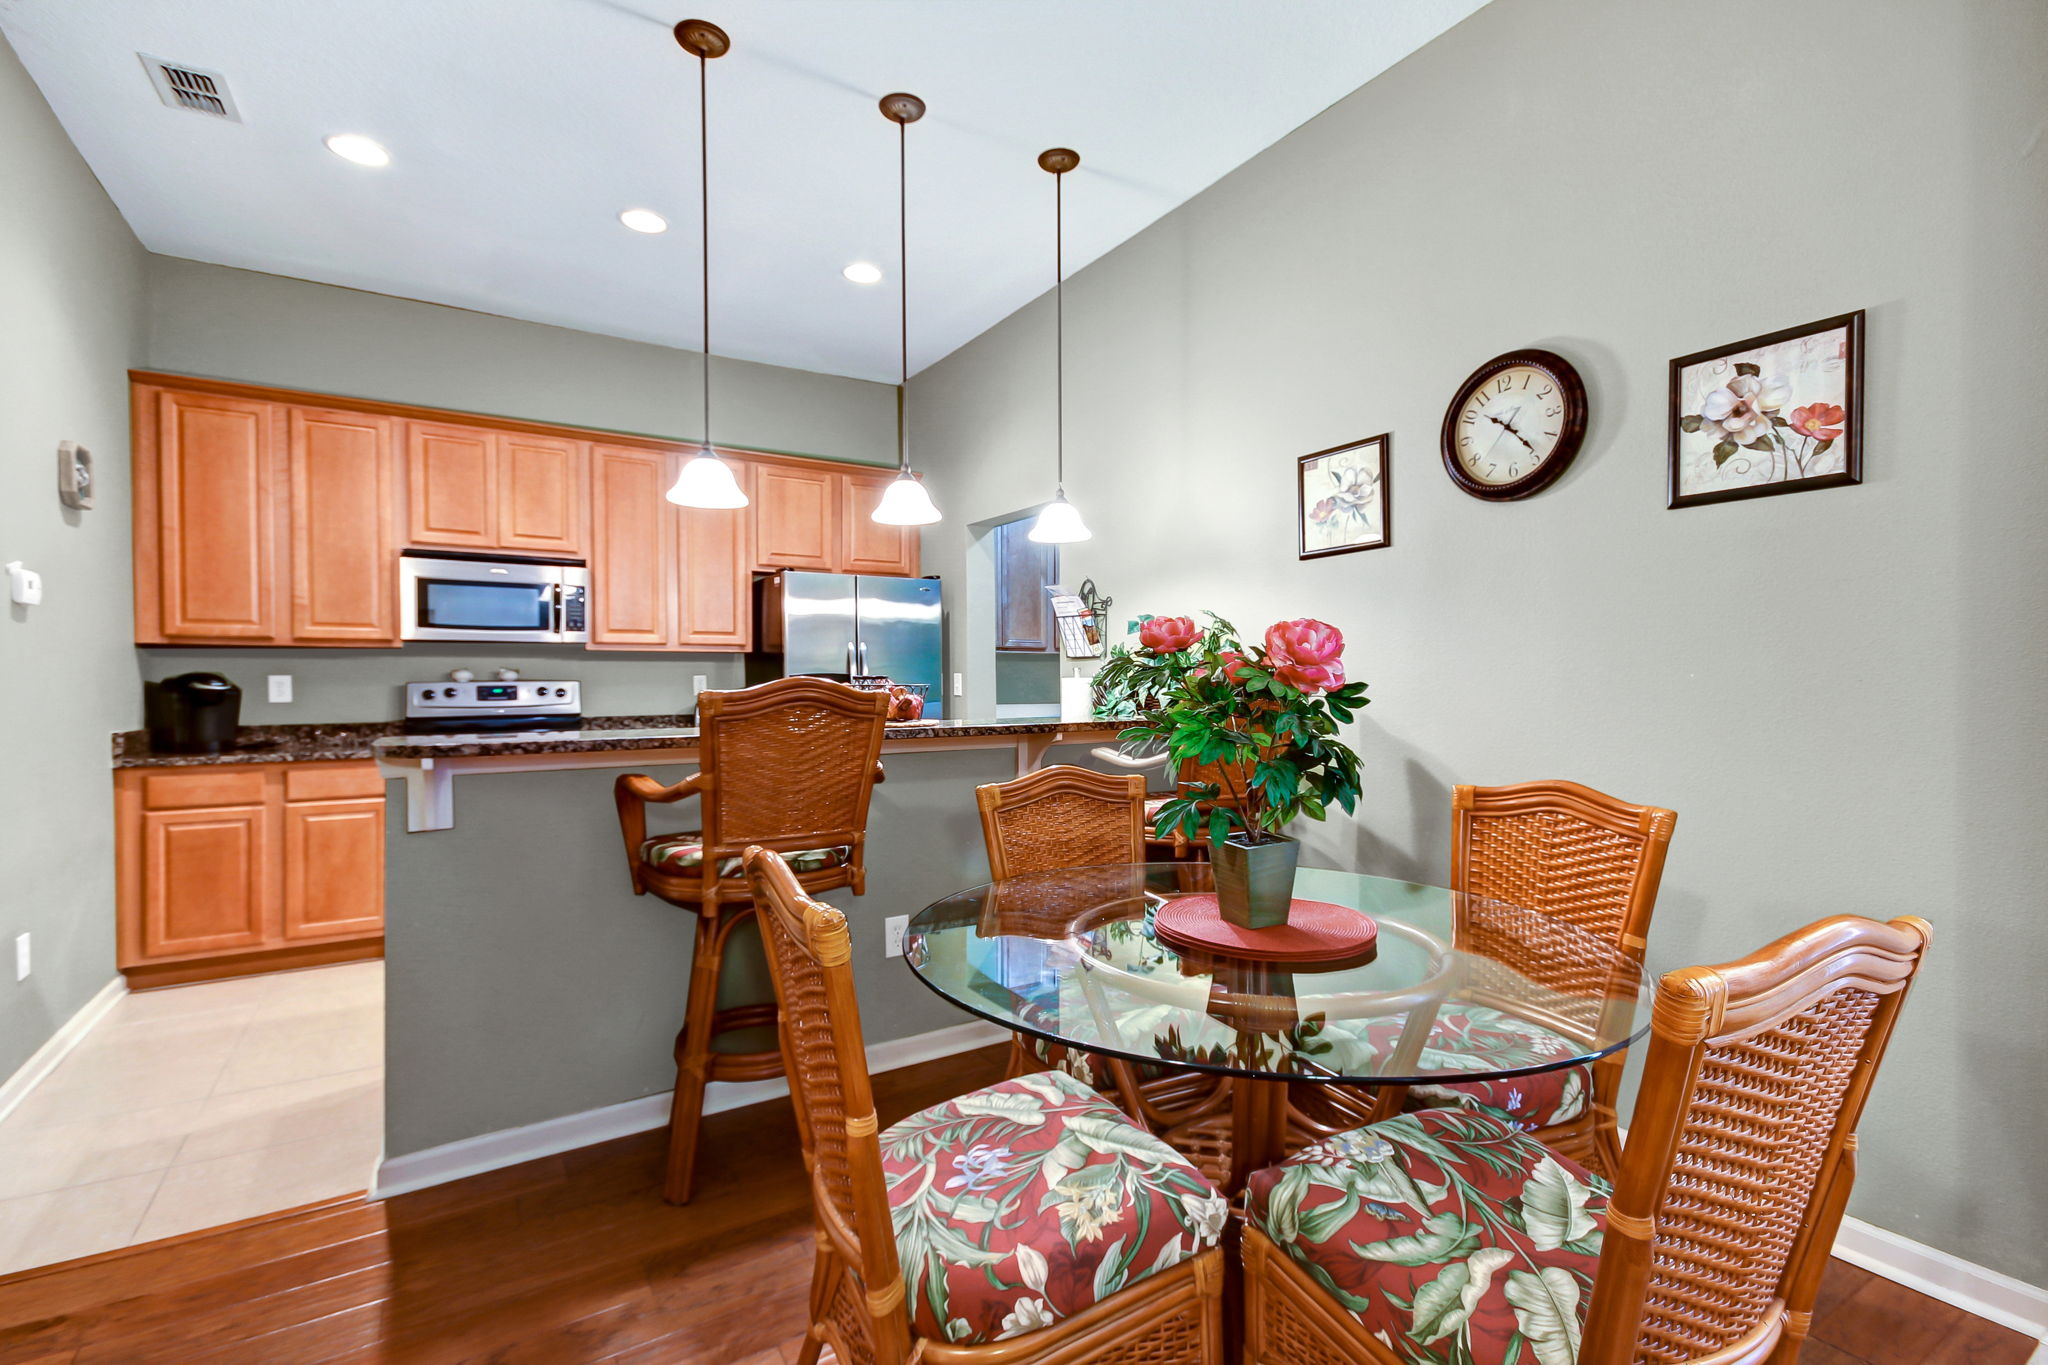 Dining area conveniently located between kitchen and living area